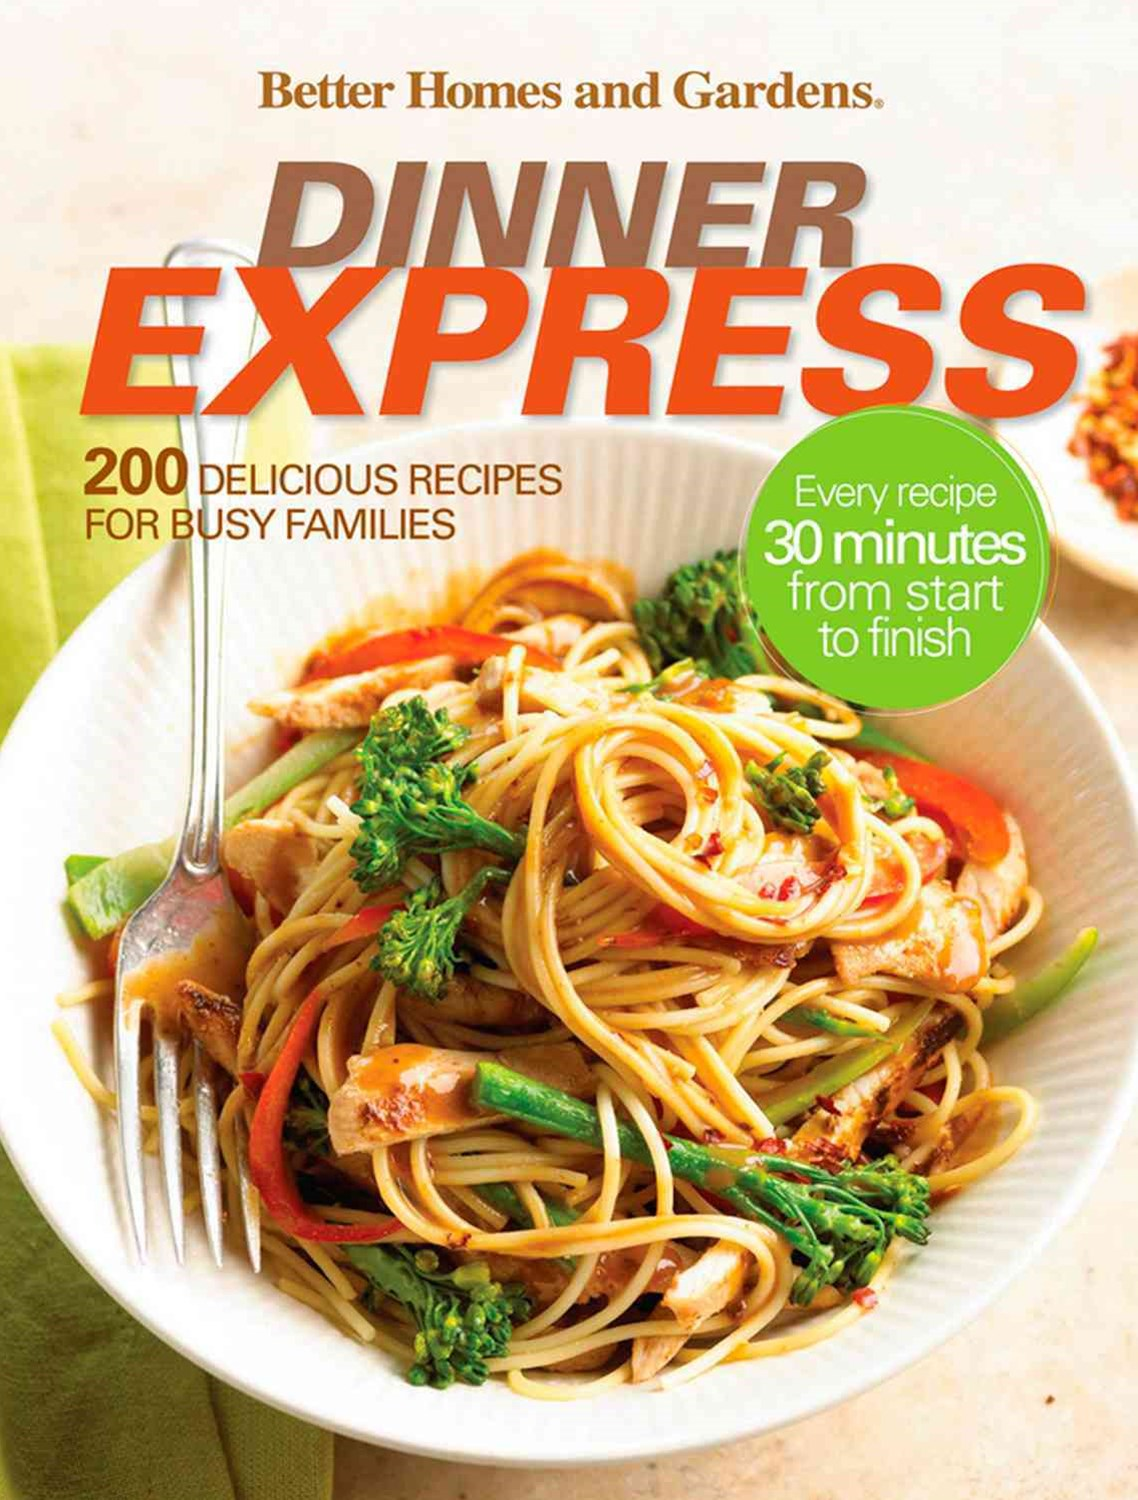 Dinner Express: Better Homes and Gardens